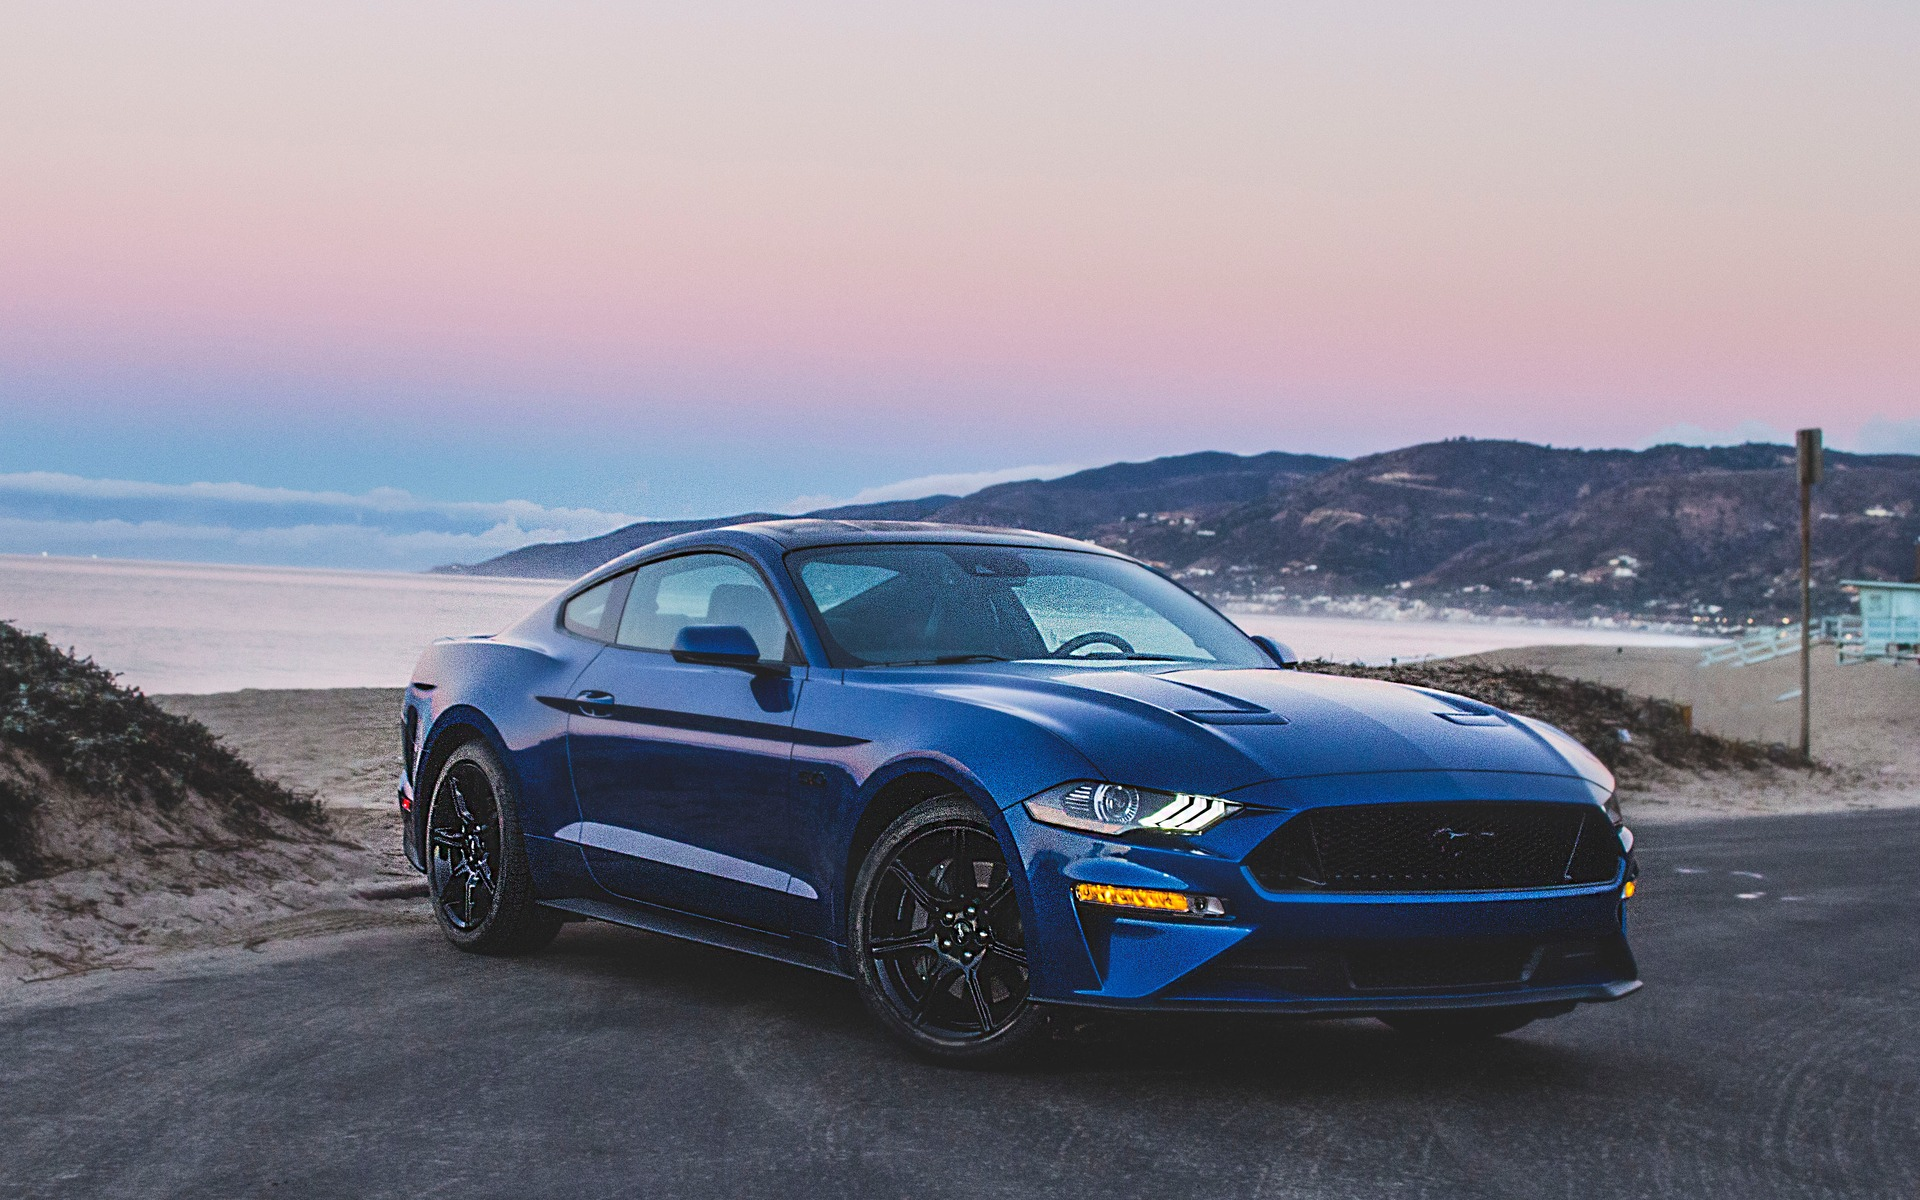 2018 Ford Mustang Photos 1 7 The Car Guide